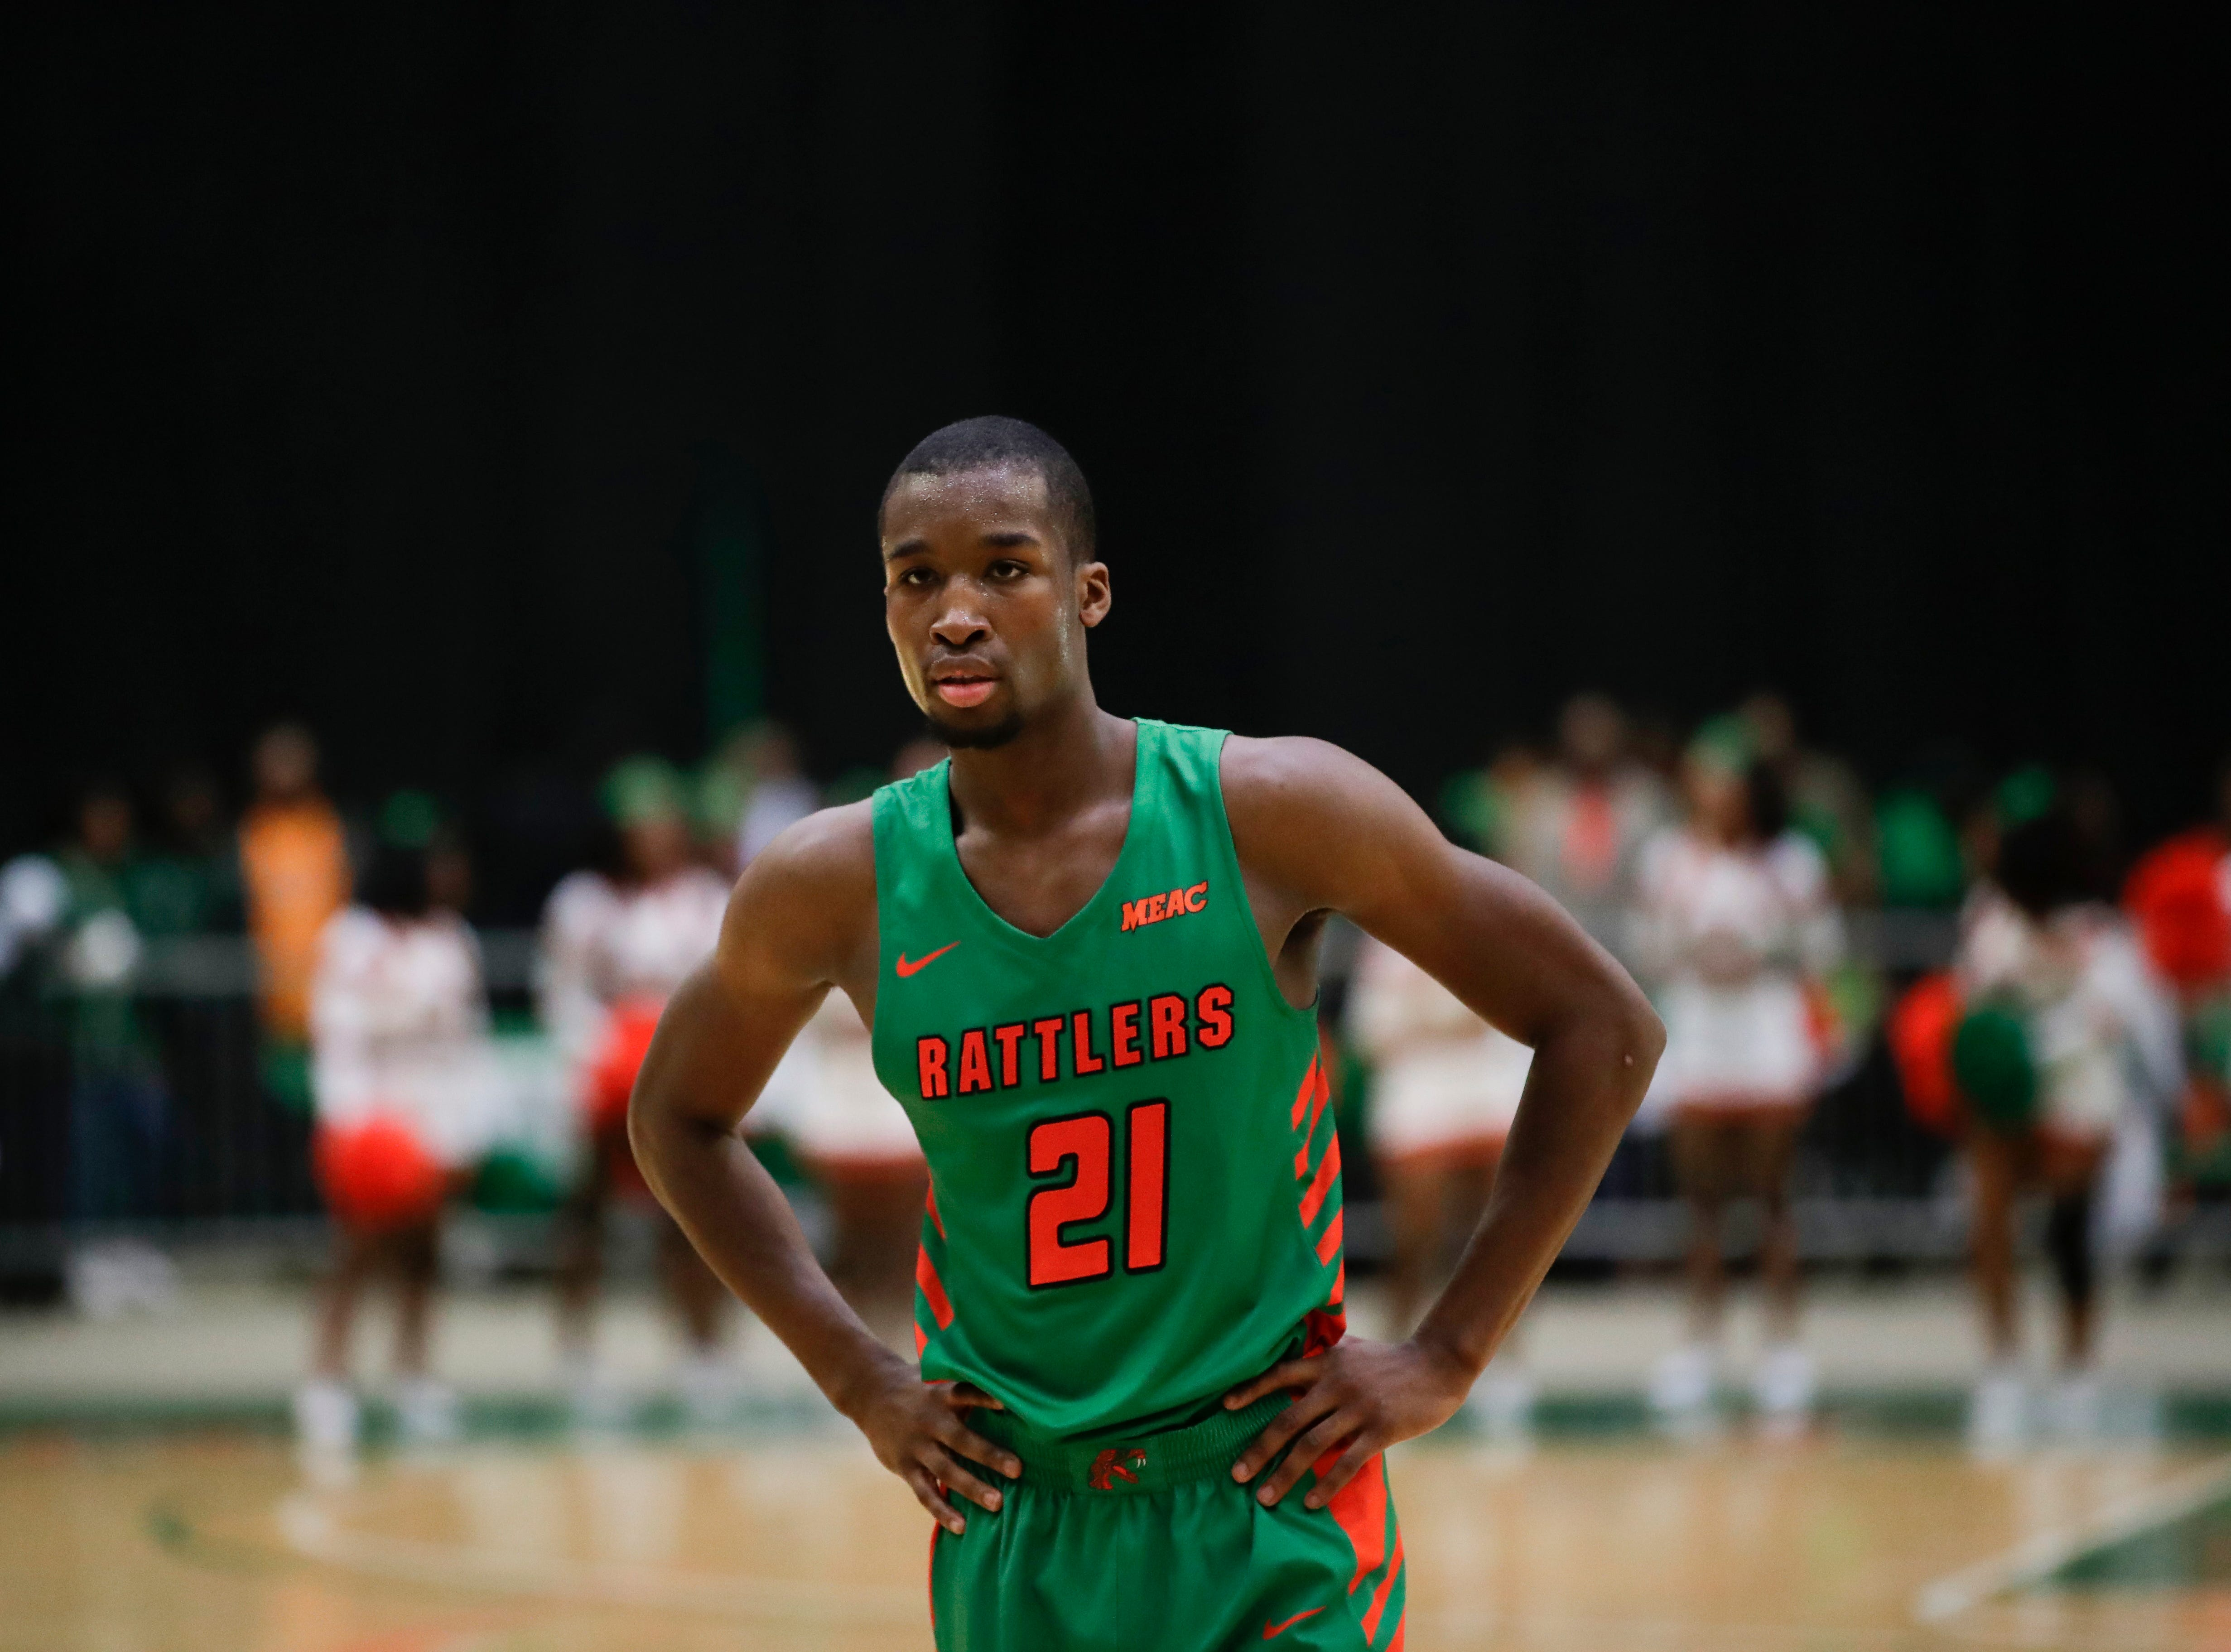 Florida A&M Rattlers guard Justin Ravenel (21) goes to the line to shoot two free throws late in the first half versus Norfolk State at the Alfred Lawson Jr. Multipurpose Center Monday, Feb. 11, 2019.